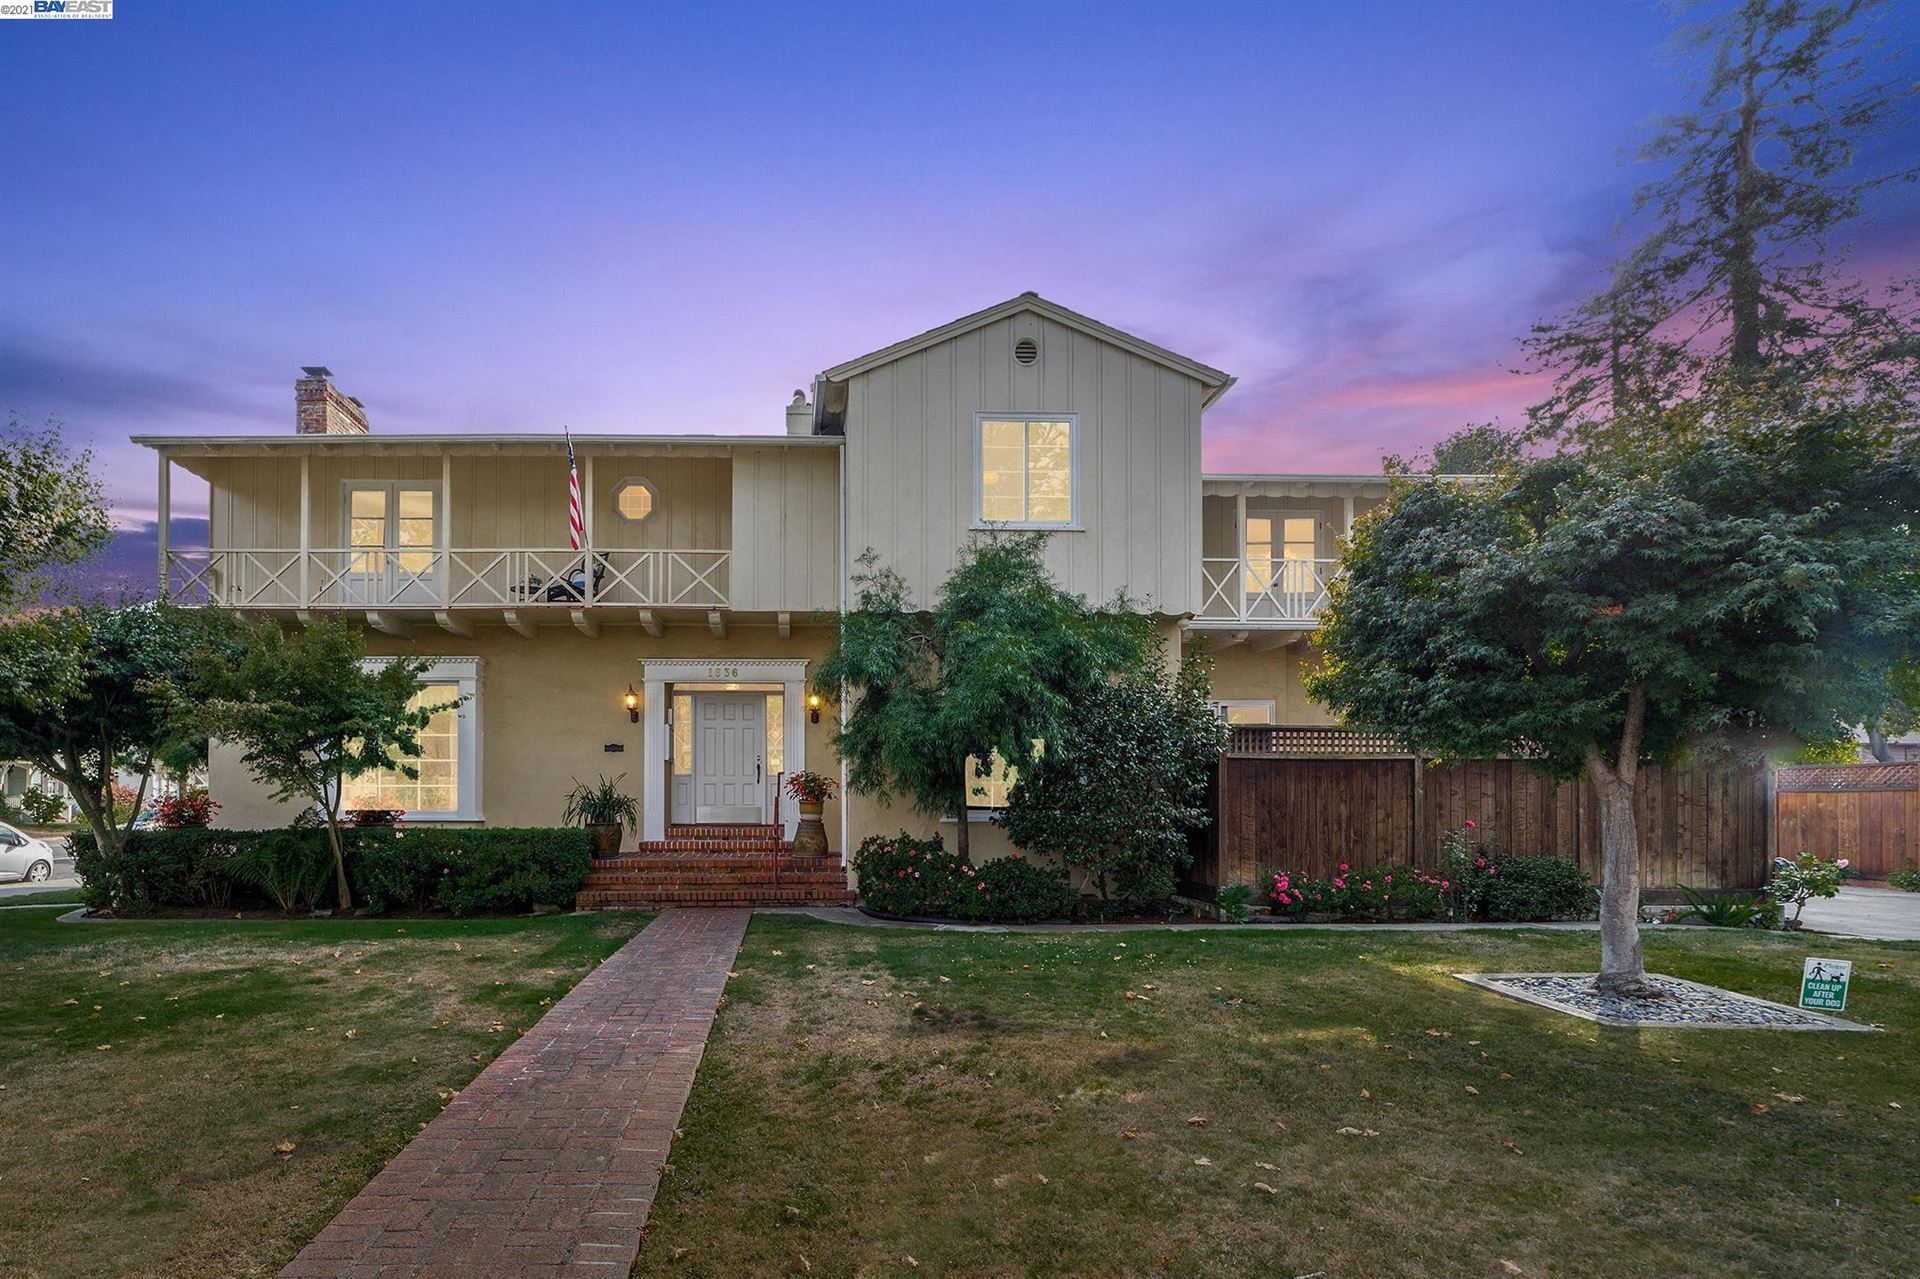 Photo of 1636 Central Ave, ALAMEDA, CA 94501 (MLS # 40966894)